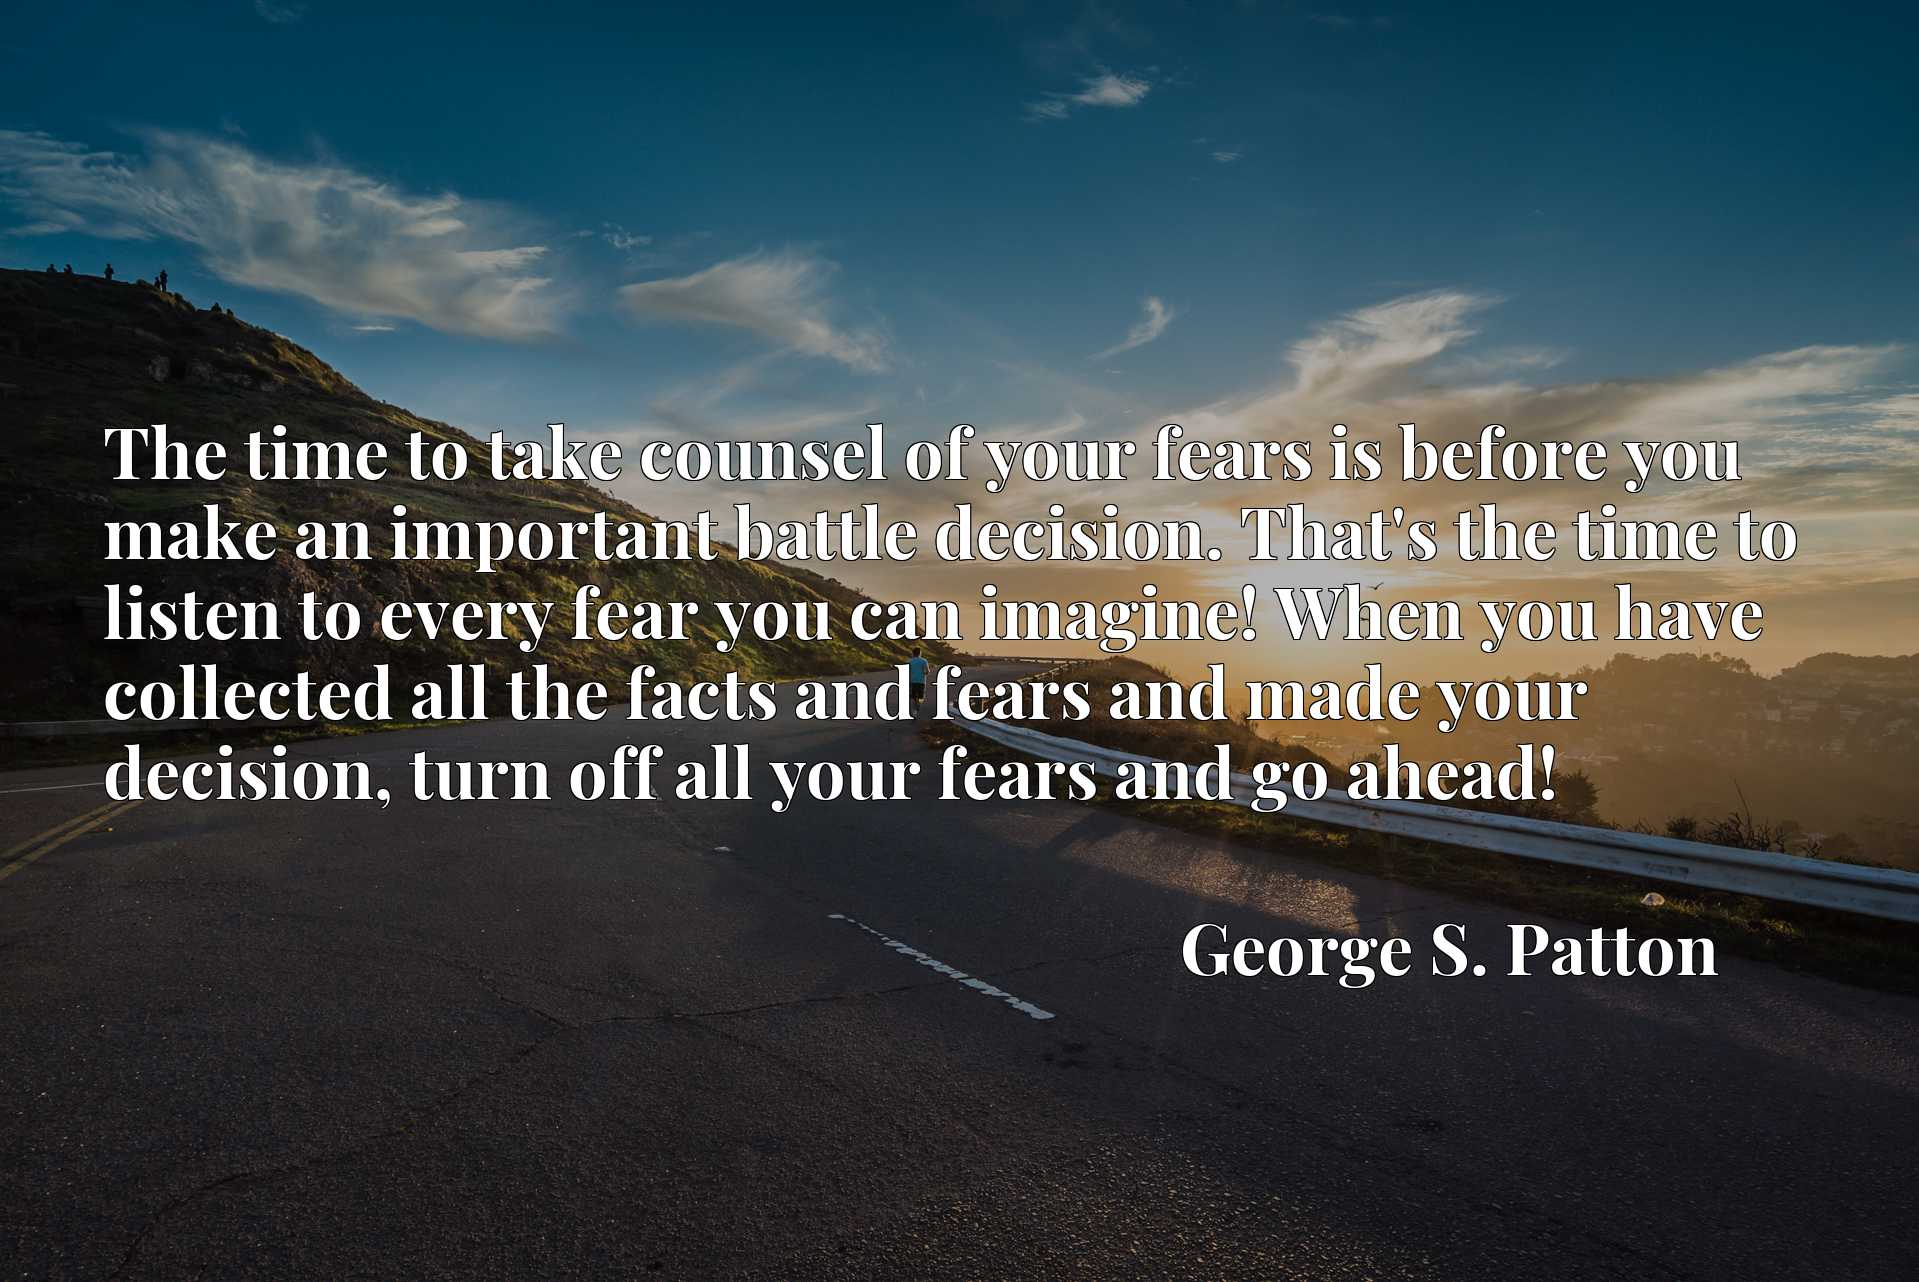 The time to take counsel of your fears is before you make an important battle decision. That's the time to listen to every fear you can imagine! When you have collected all the facts and fears and made your decision, turn off all your fears and go ahead!